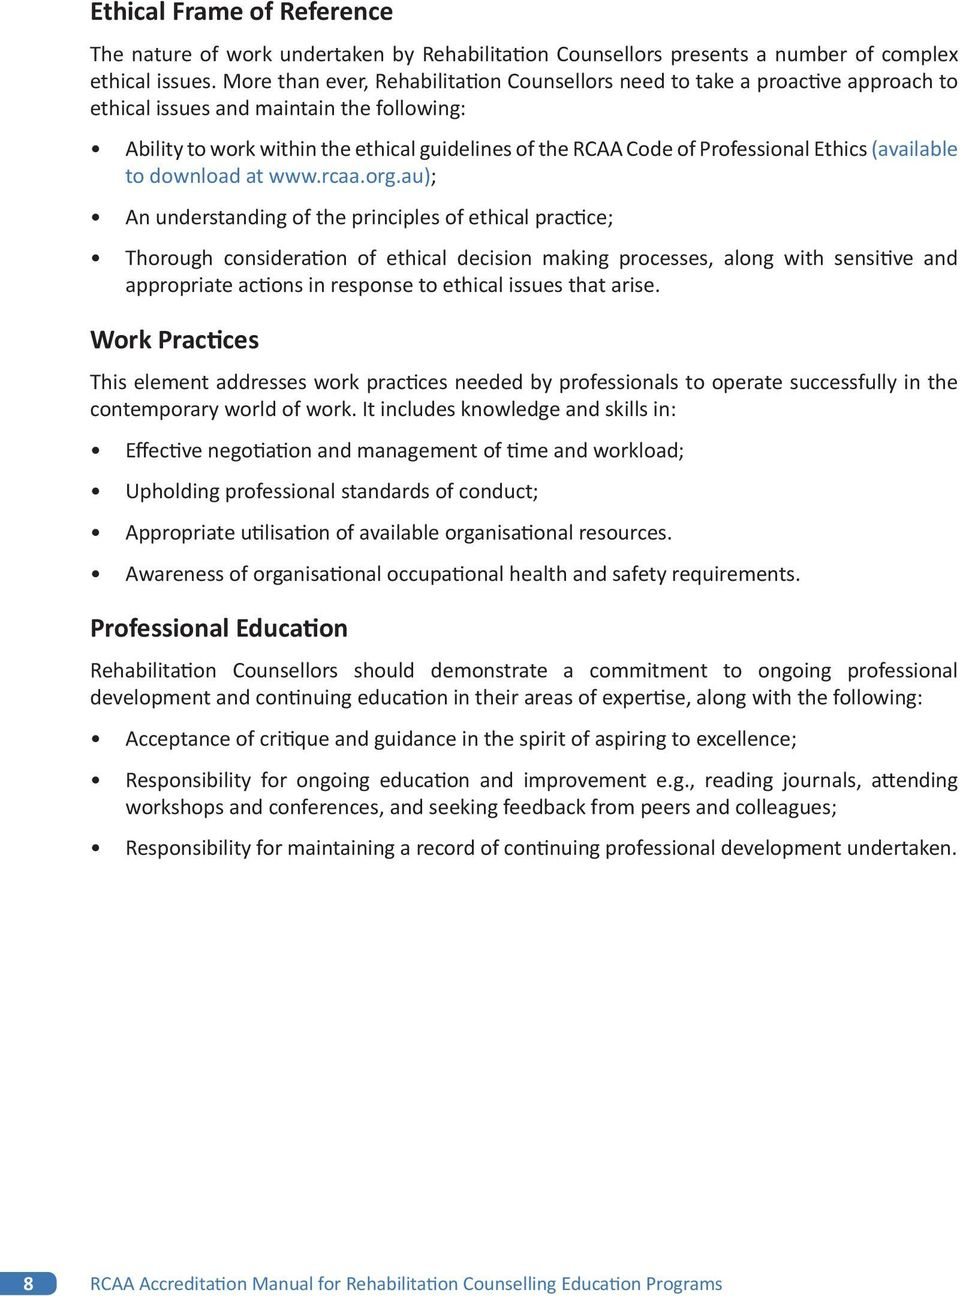 Professional Ethics (available to download at www.rcaa.org.